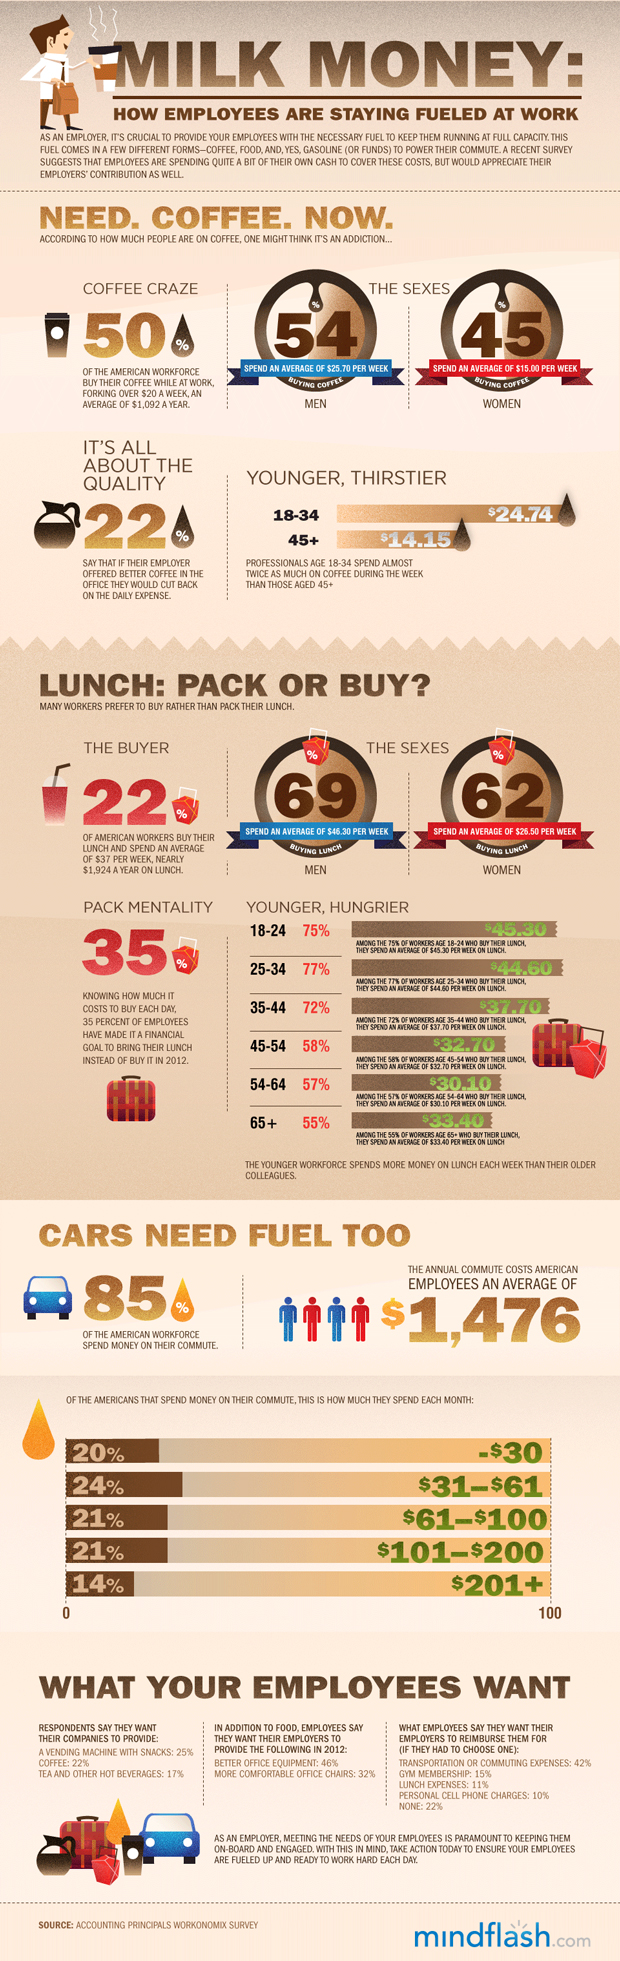 Find out How Employees Are Staying Fueled At Work